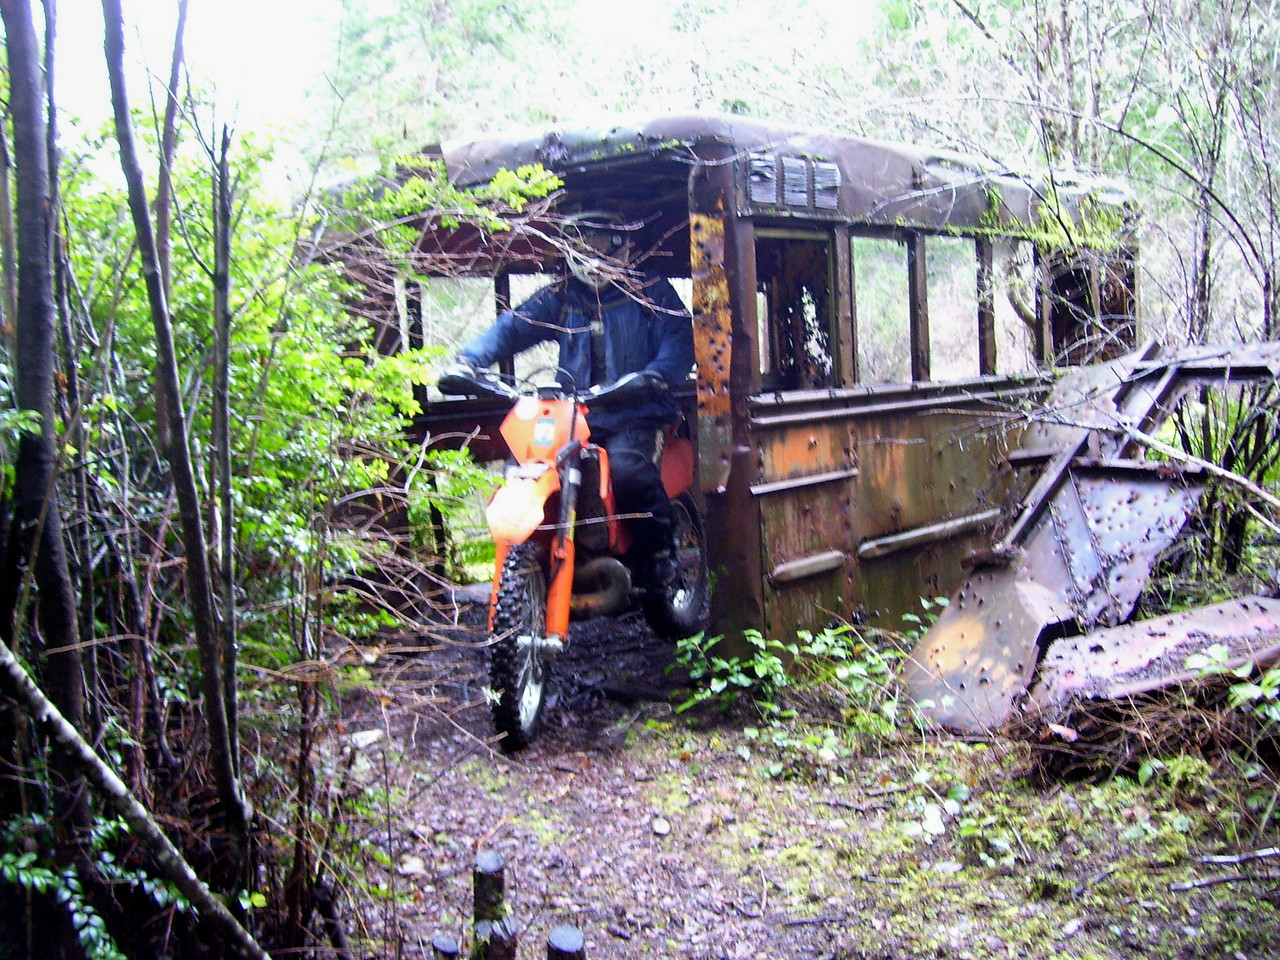 """Marc in the """"School Bus"""". It's actually one of the Buses they hauled the Youth Camp Inmates to the work projects such as building these trails."""